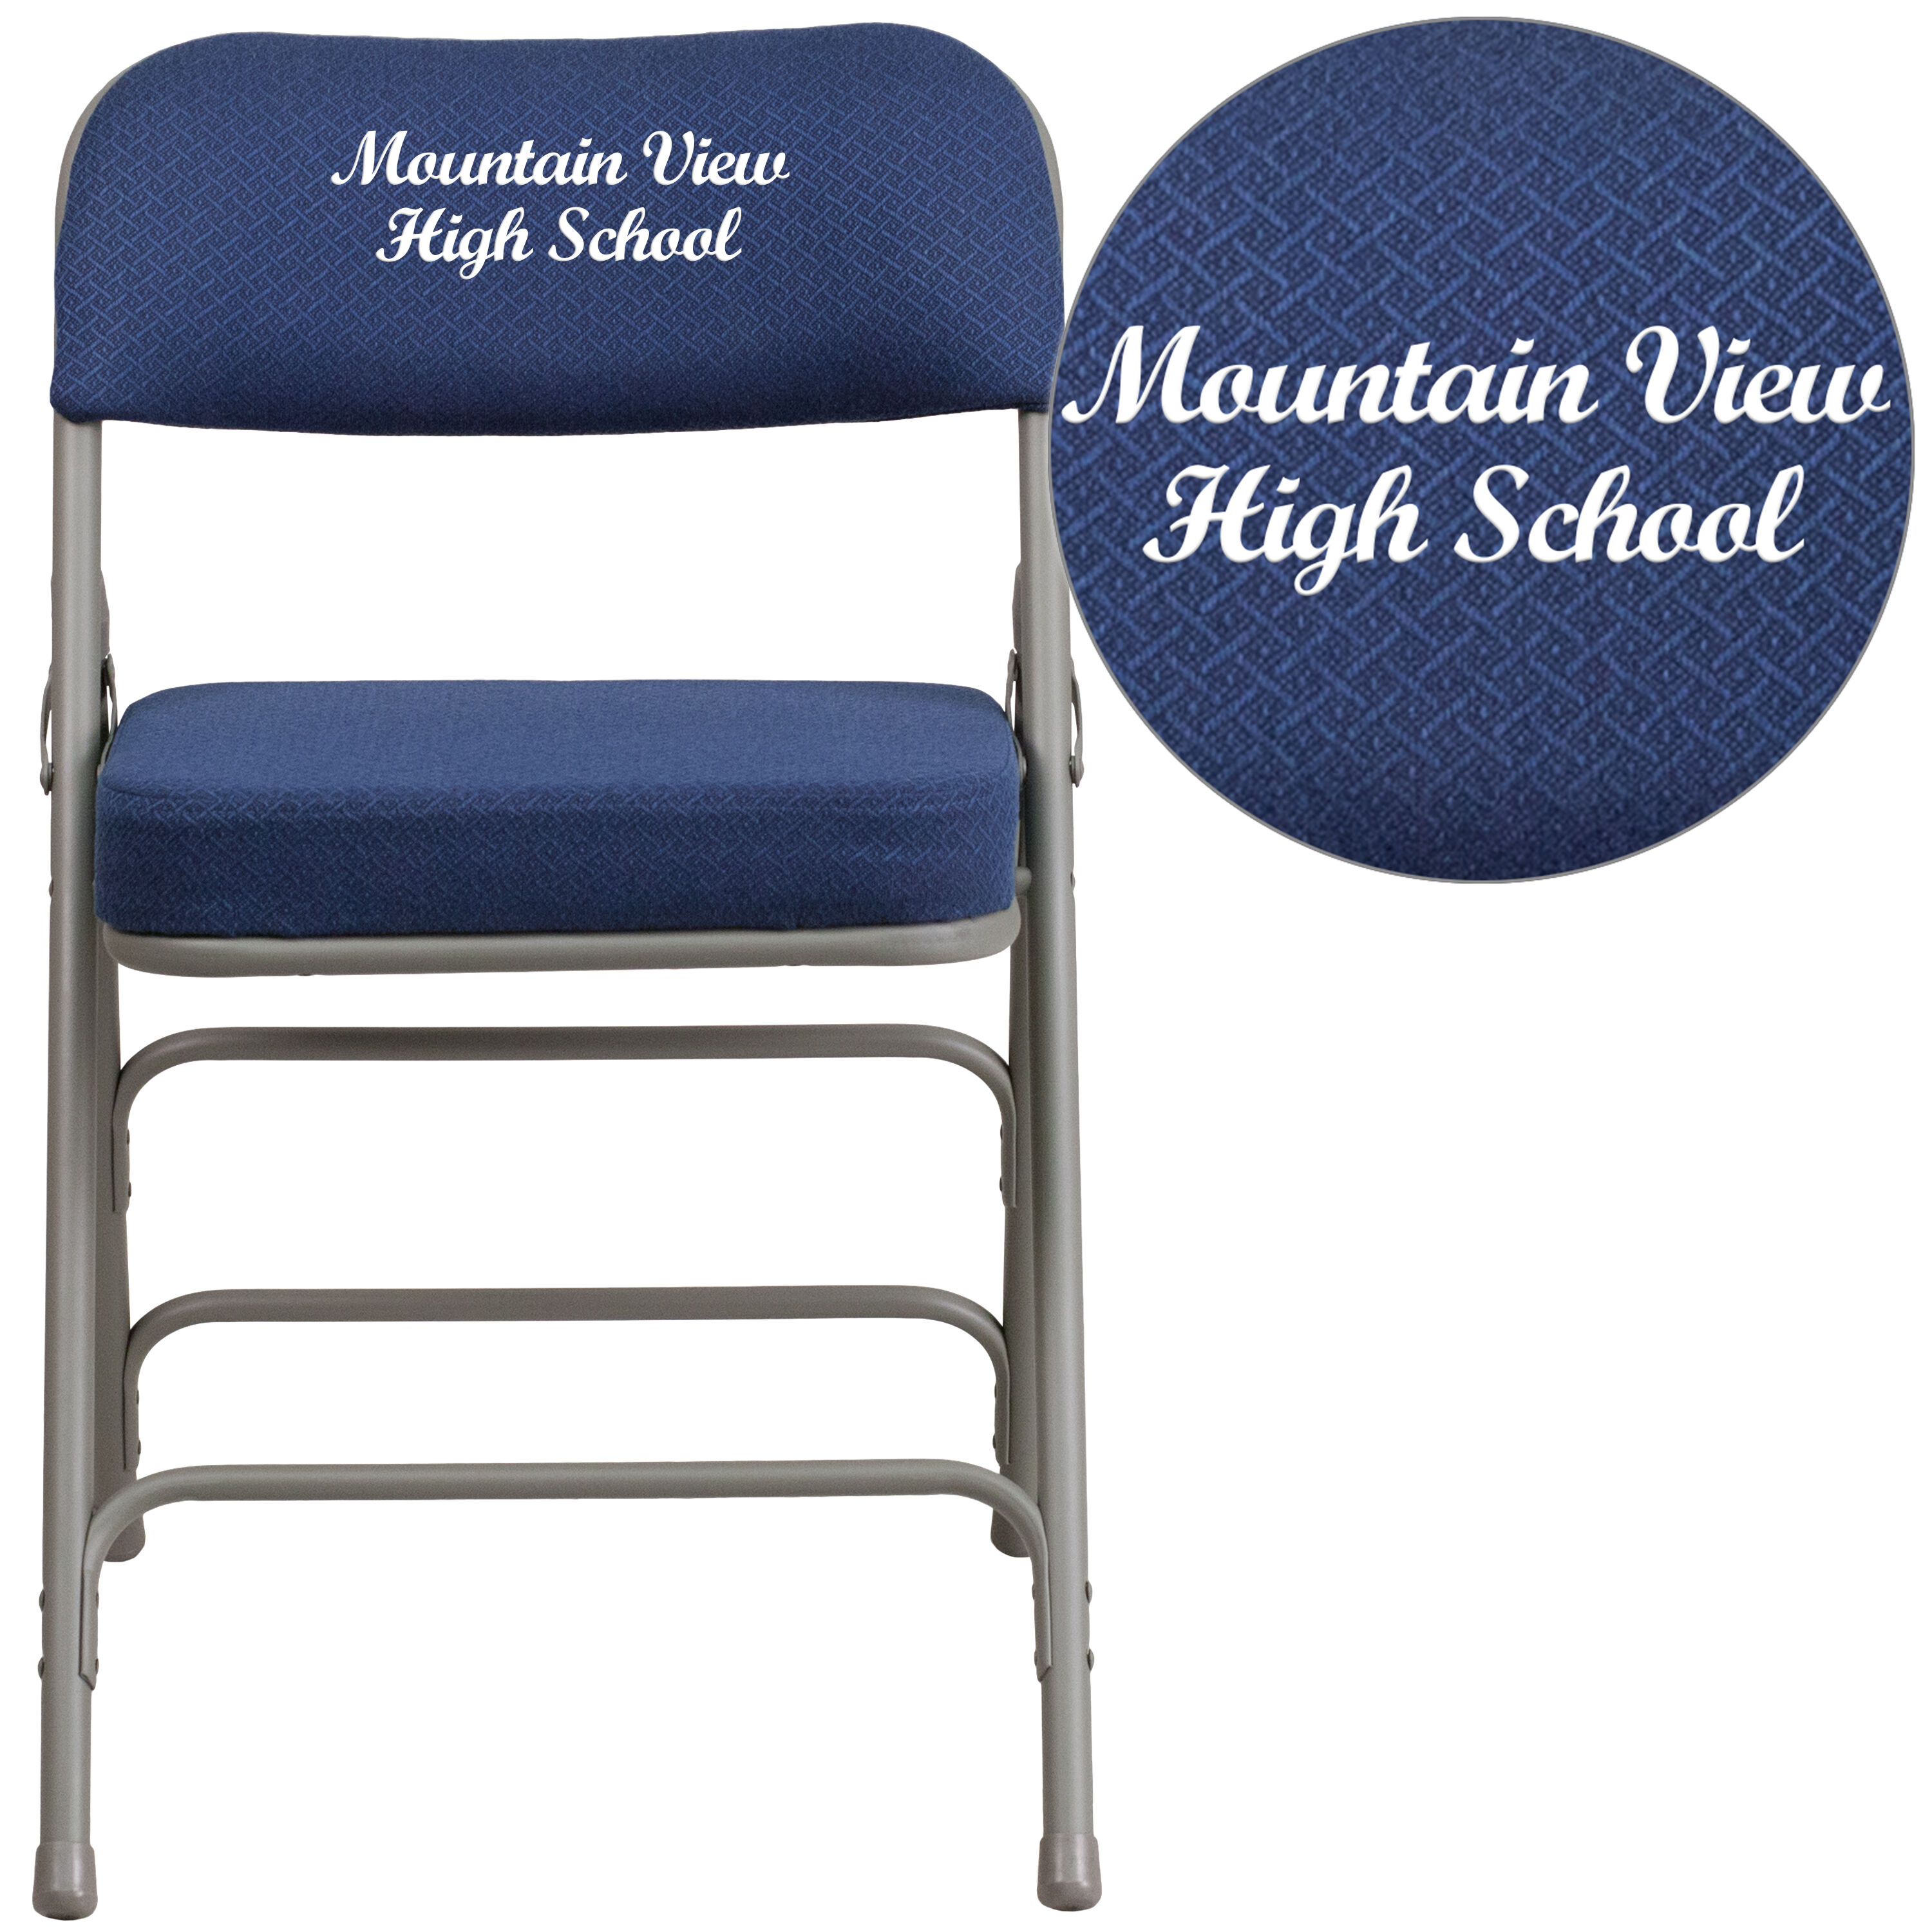 blue metal folding chairs revolving chair hsn number foldingchairs4less embroidered hercules series premium curved triple braced double hinged navy fabric